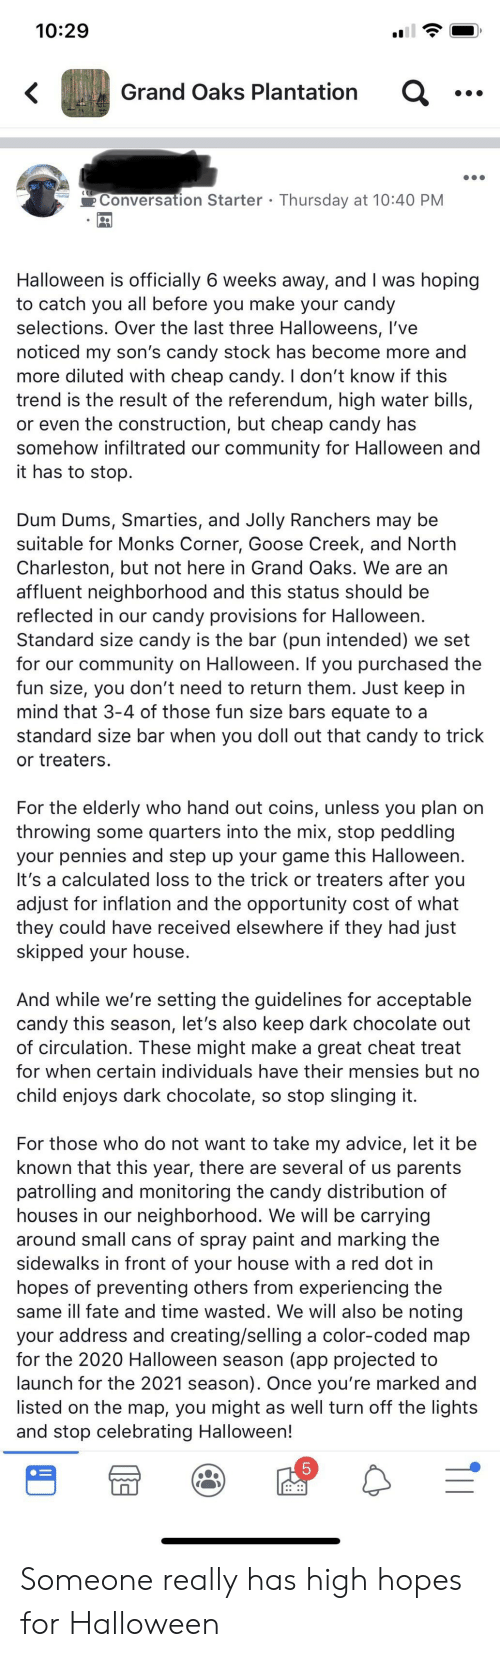 Advice, Candy, and Community: 10:29  Grand Oaks Plantation  Conversation Starter Thursday at 10:40 PM  Halloween is officially 6 weeks away, and I was hoping  to catch you all before you make your candy  selections. Over the last three Halloweens, I've  noticed my son's candy stock has become more and  more diluted with cheap candy. I don't know if this  trend is the result of the referendum, high water bills,  or even the construction, but cheap candy has  somehow infiltrated our community for Halloween and  it has to stop.  Dum Dums, Smarties, and Jolly Ranchers may be  suitable for Monks Corner, Goose Creek, and North  Charleston, but not here in Grand Oaks. We are an  affluent neighborhood and this status should be  reflected in our candy provisions for Halloween.  Standard size candy is the bar (pun intended) we set  for our community on Halloween. If you purchased the  fun size, you don't need to return them. Just keep in  mind that 3-4 of those fun size bars equate to a  standard size bar when you doll out that candy to trick  or treaters  For the elderly who hand out coins, unless you plan on  throwing some quarters into the mix, stop peddling  your pennies and step up your game this Halloween.  It's a calculated loss to the trick or treaters after you  adjust for inflation and the opportunity cost of what  they could have received elsewhere if they had just  skipped your house.  And while we're setting the guidelines for acceptable  candy this season, let's also keep dark chocolate out  of circulation. These might make a great cheat treat  for when certain individuals have their mensies but no  child enjoys dark chocolate, so stop slinging it  For those who do not want to take my advice, let it be  known that this year, there are several of us parents  patrolling and monitoring the candy distribution of  houses in our neighborhood. We will be carrying  around small cans of spray paint and marking the  sidewalks in front of your house with a red dot in  hope